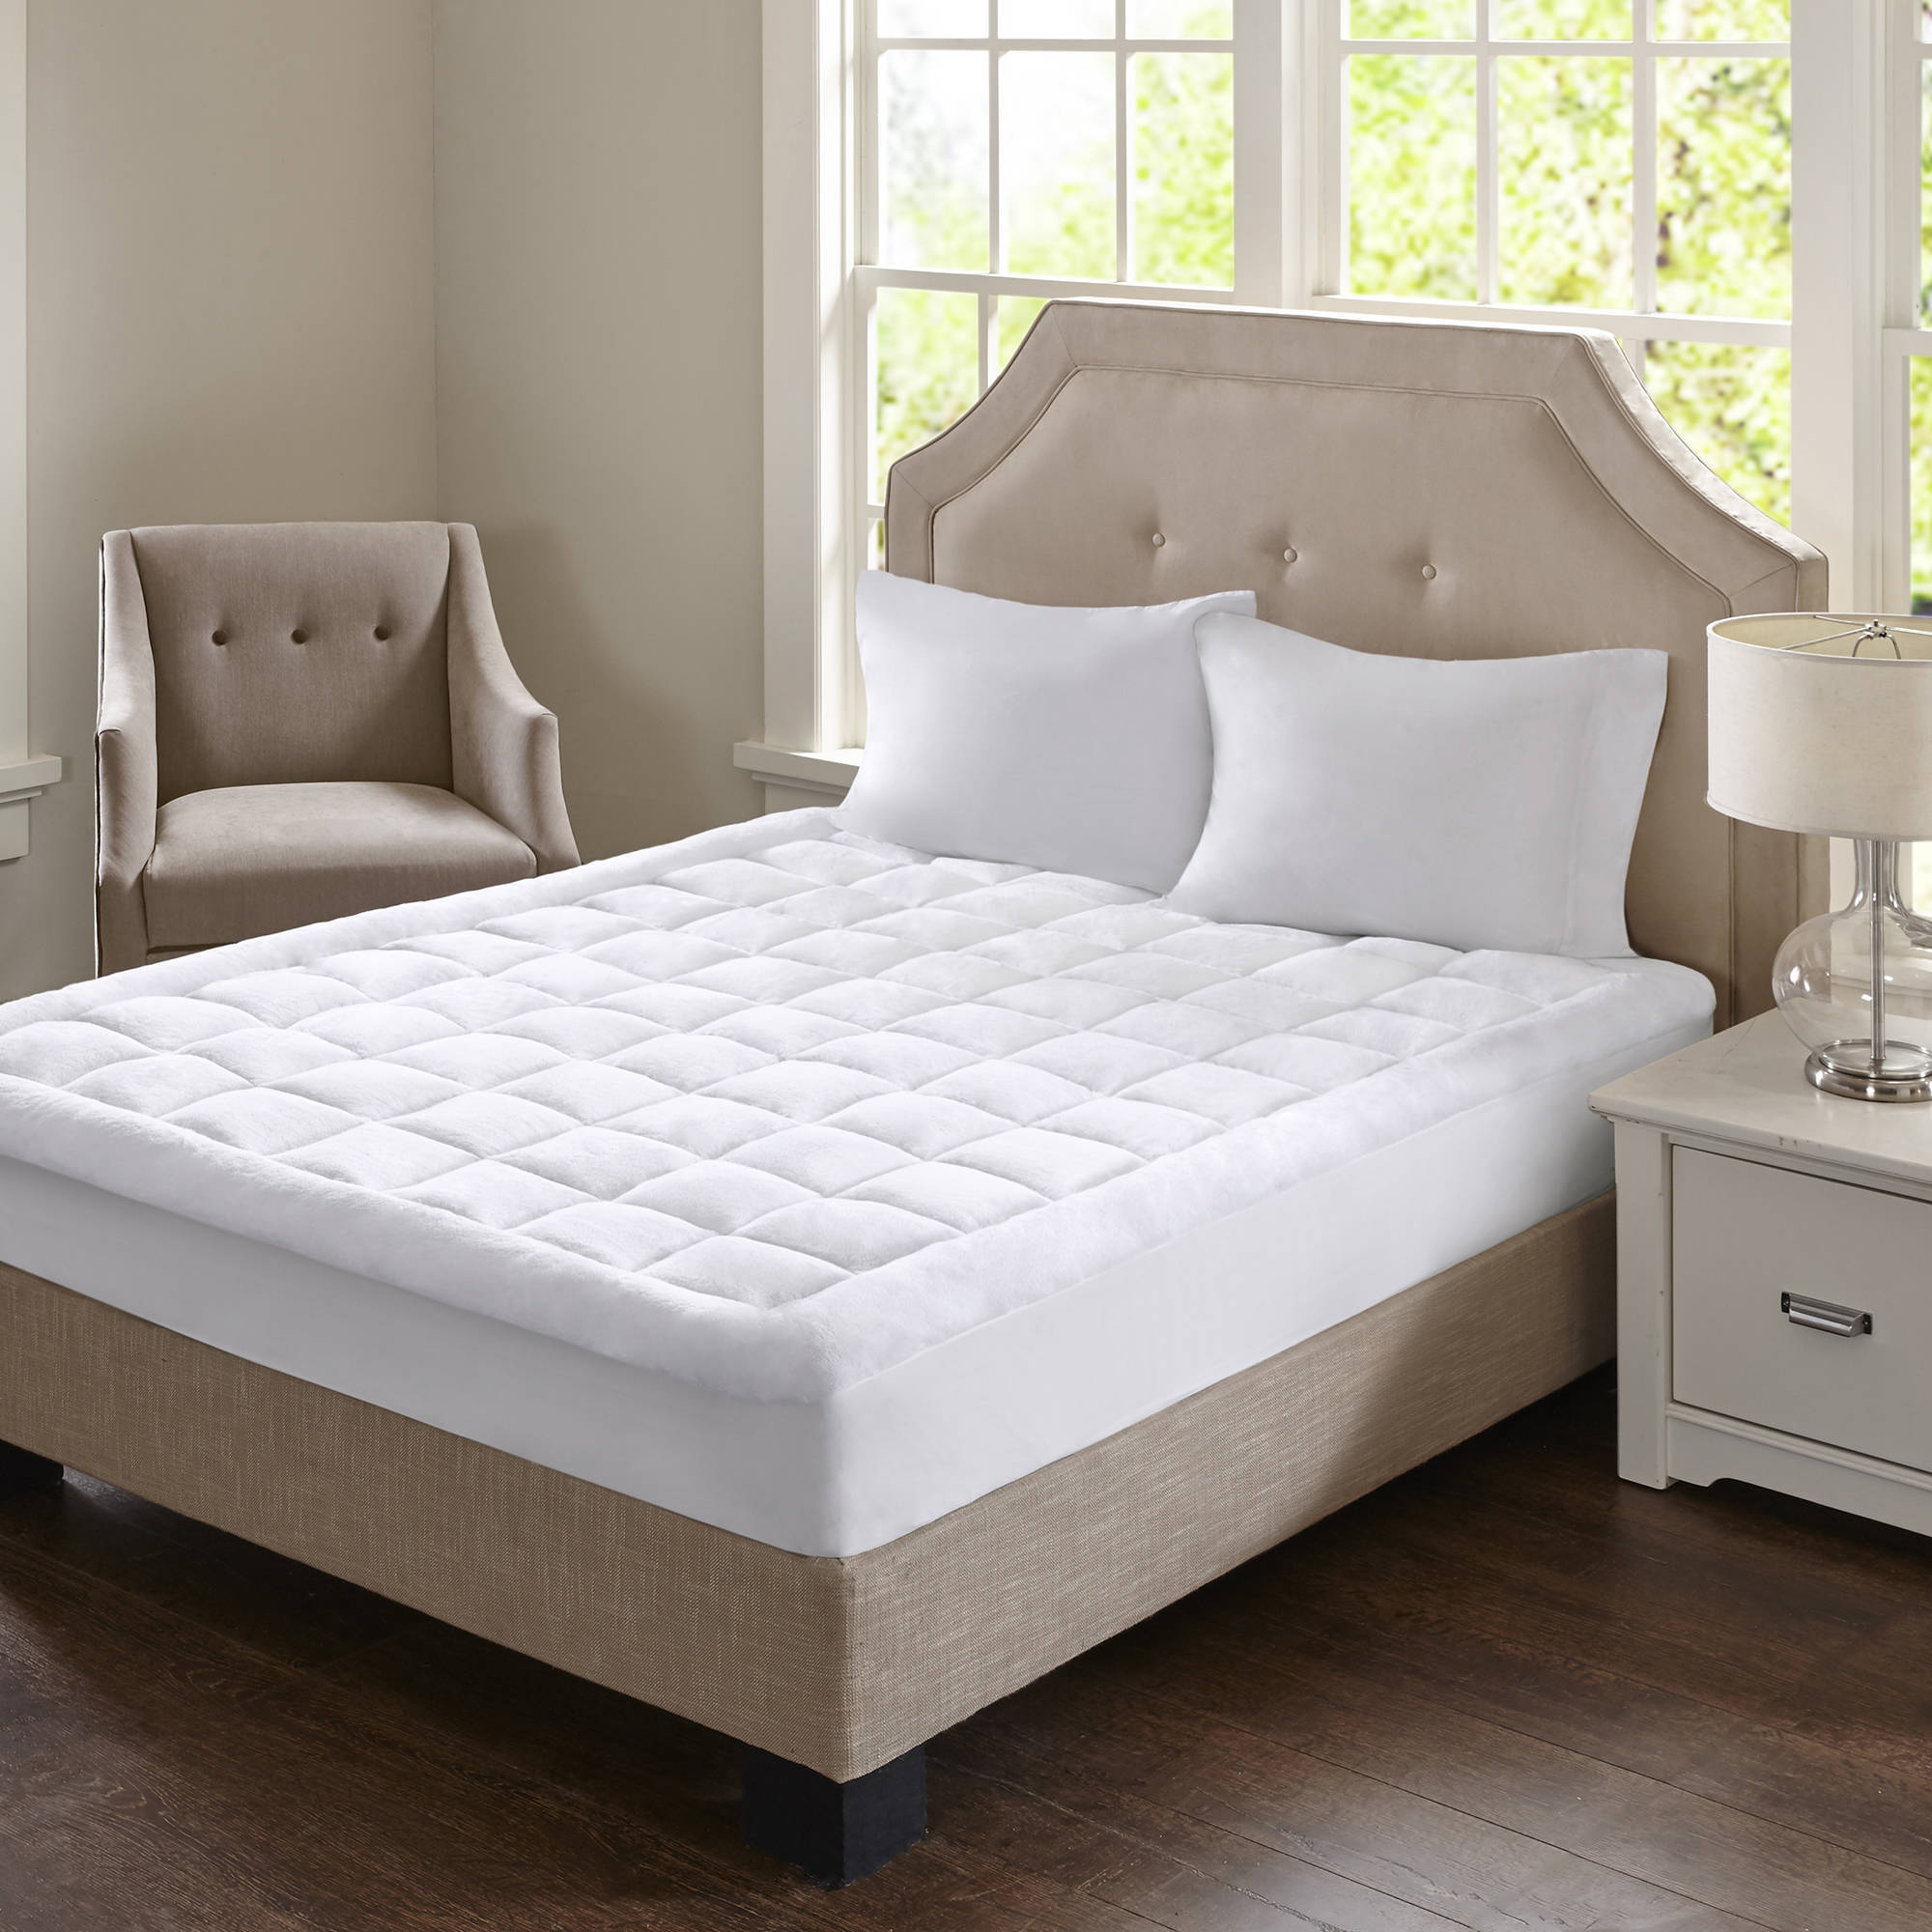 Home Essence Heavenly Soft Overfilled Plush Waterproof Mattress Pad by E&E Co.